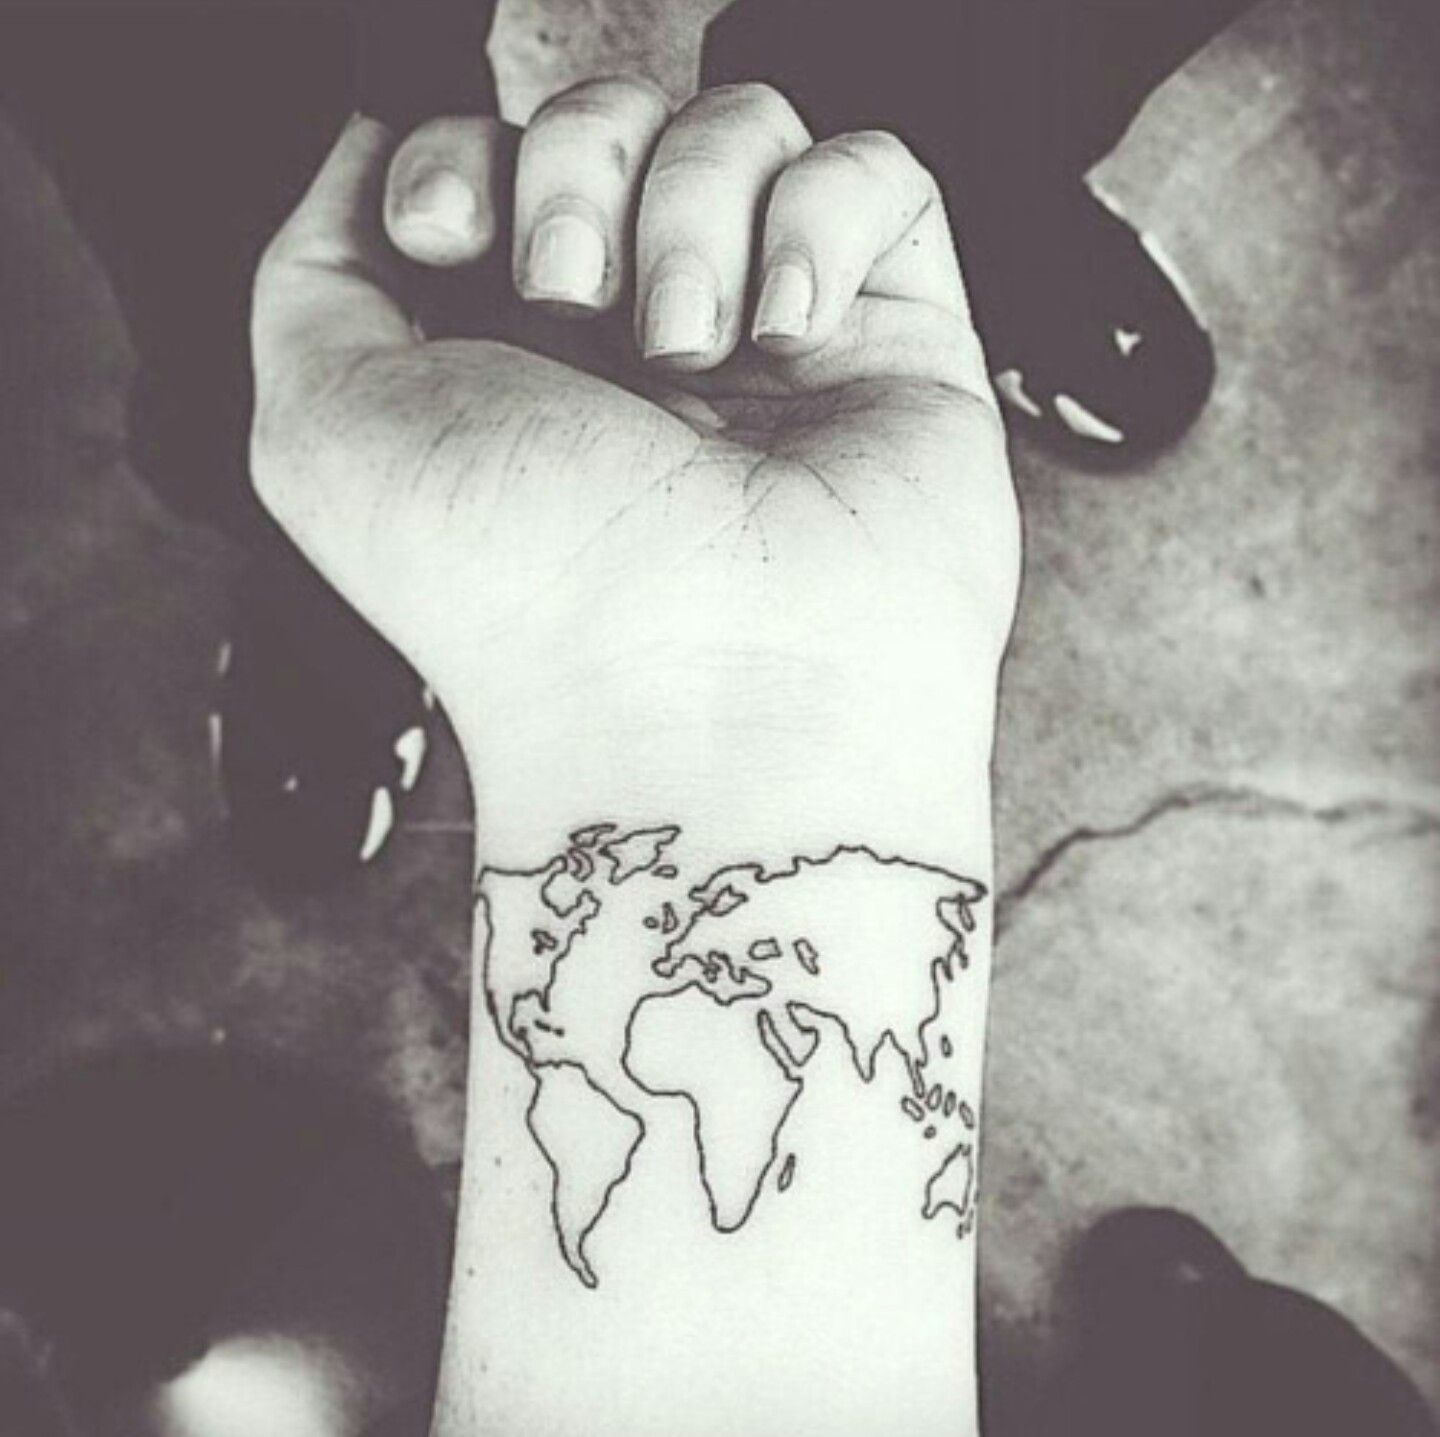 Pin by ainhoa martinez on tatuajes pinterest explore world map tattoos ankle tattoos and more gumiabroncs Image collections